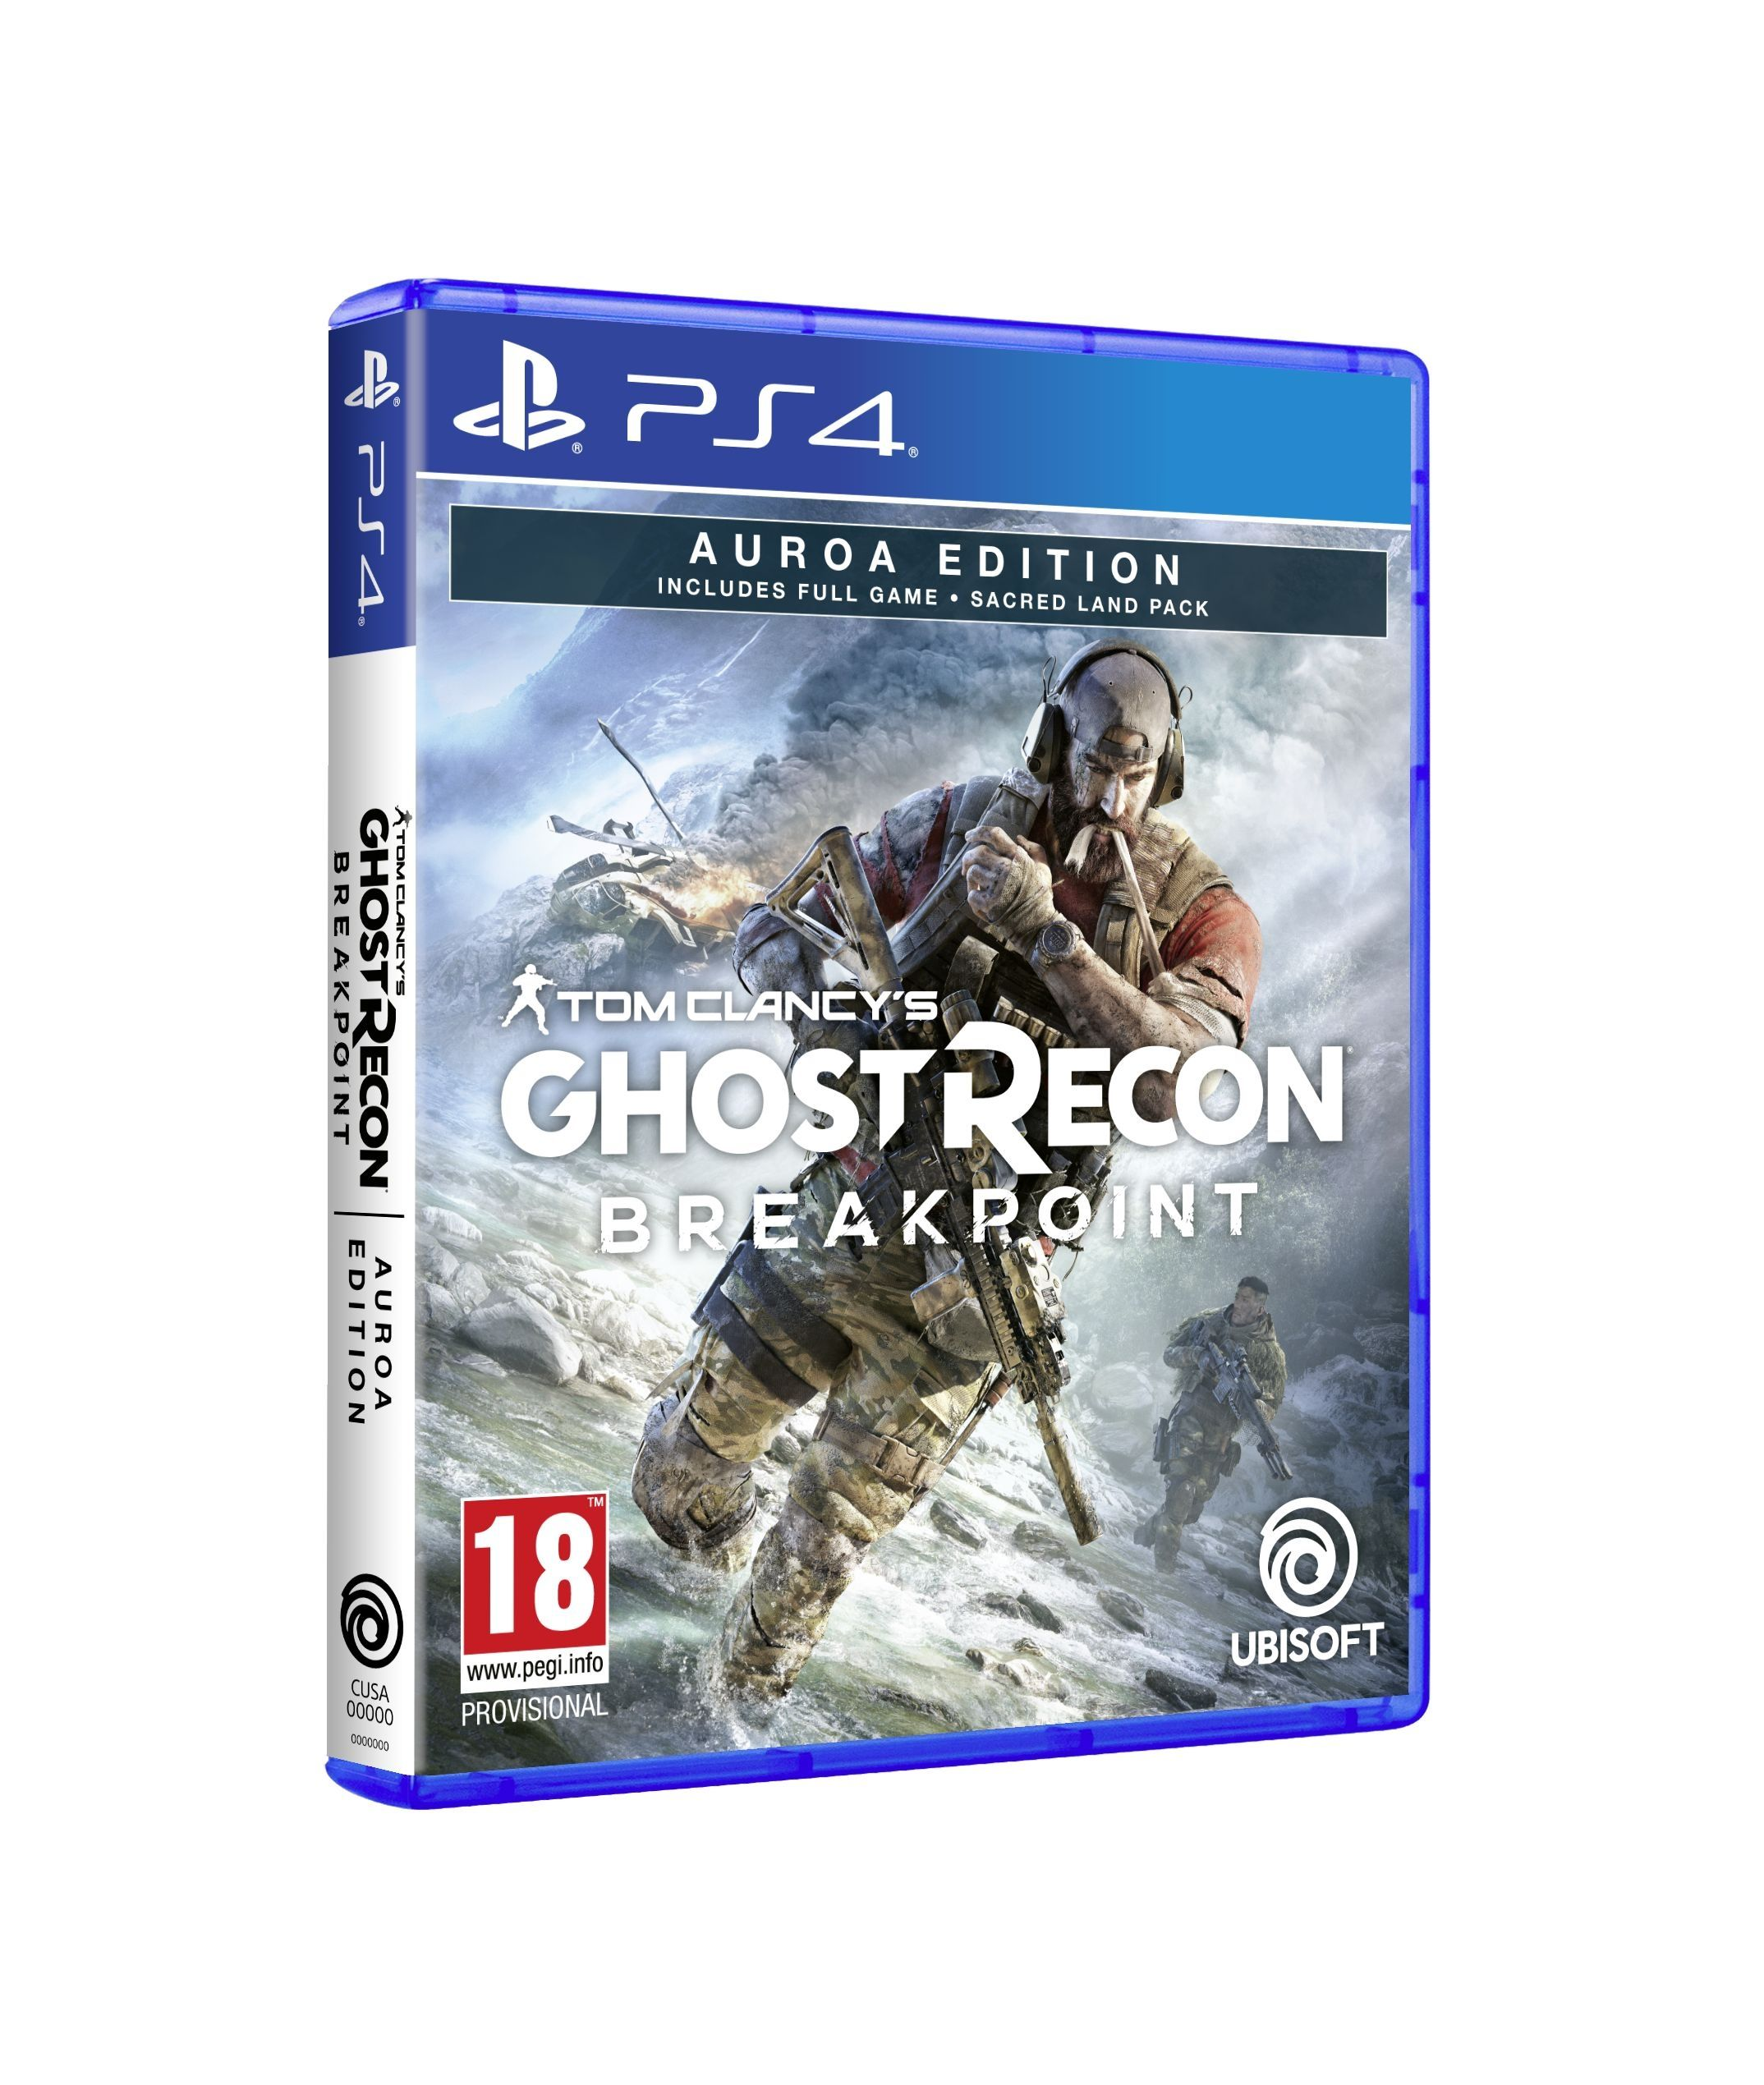 Tom Clancy's Ghost Recon Breakpoint - Auroa Edition (PS4) - 3